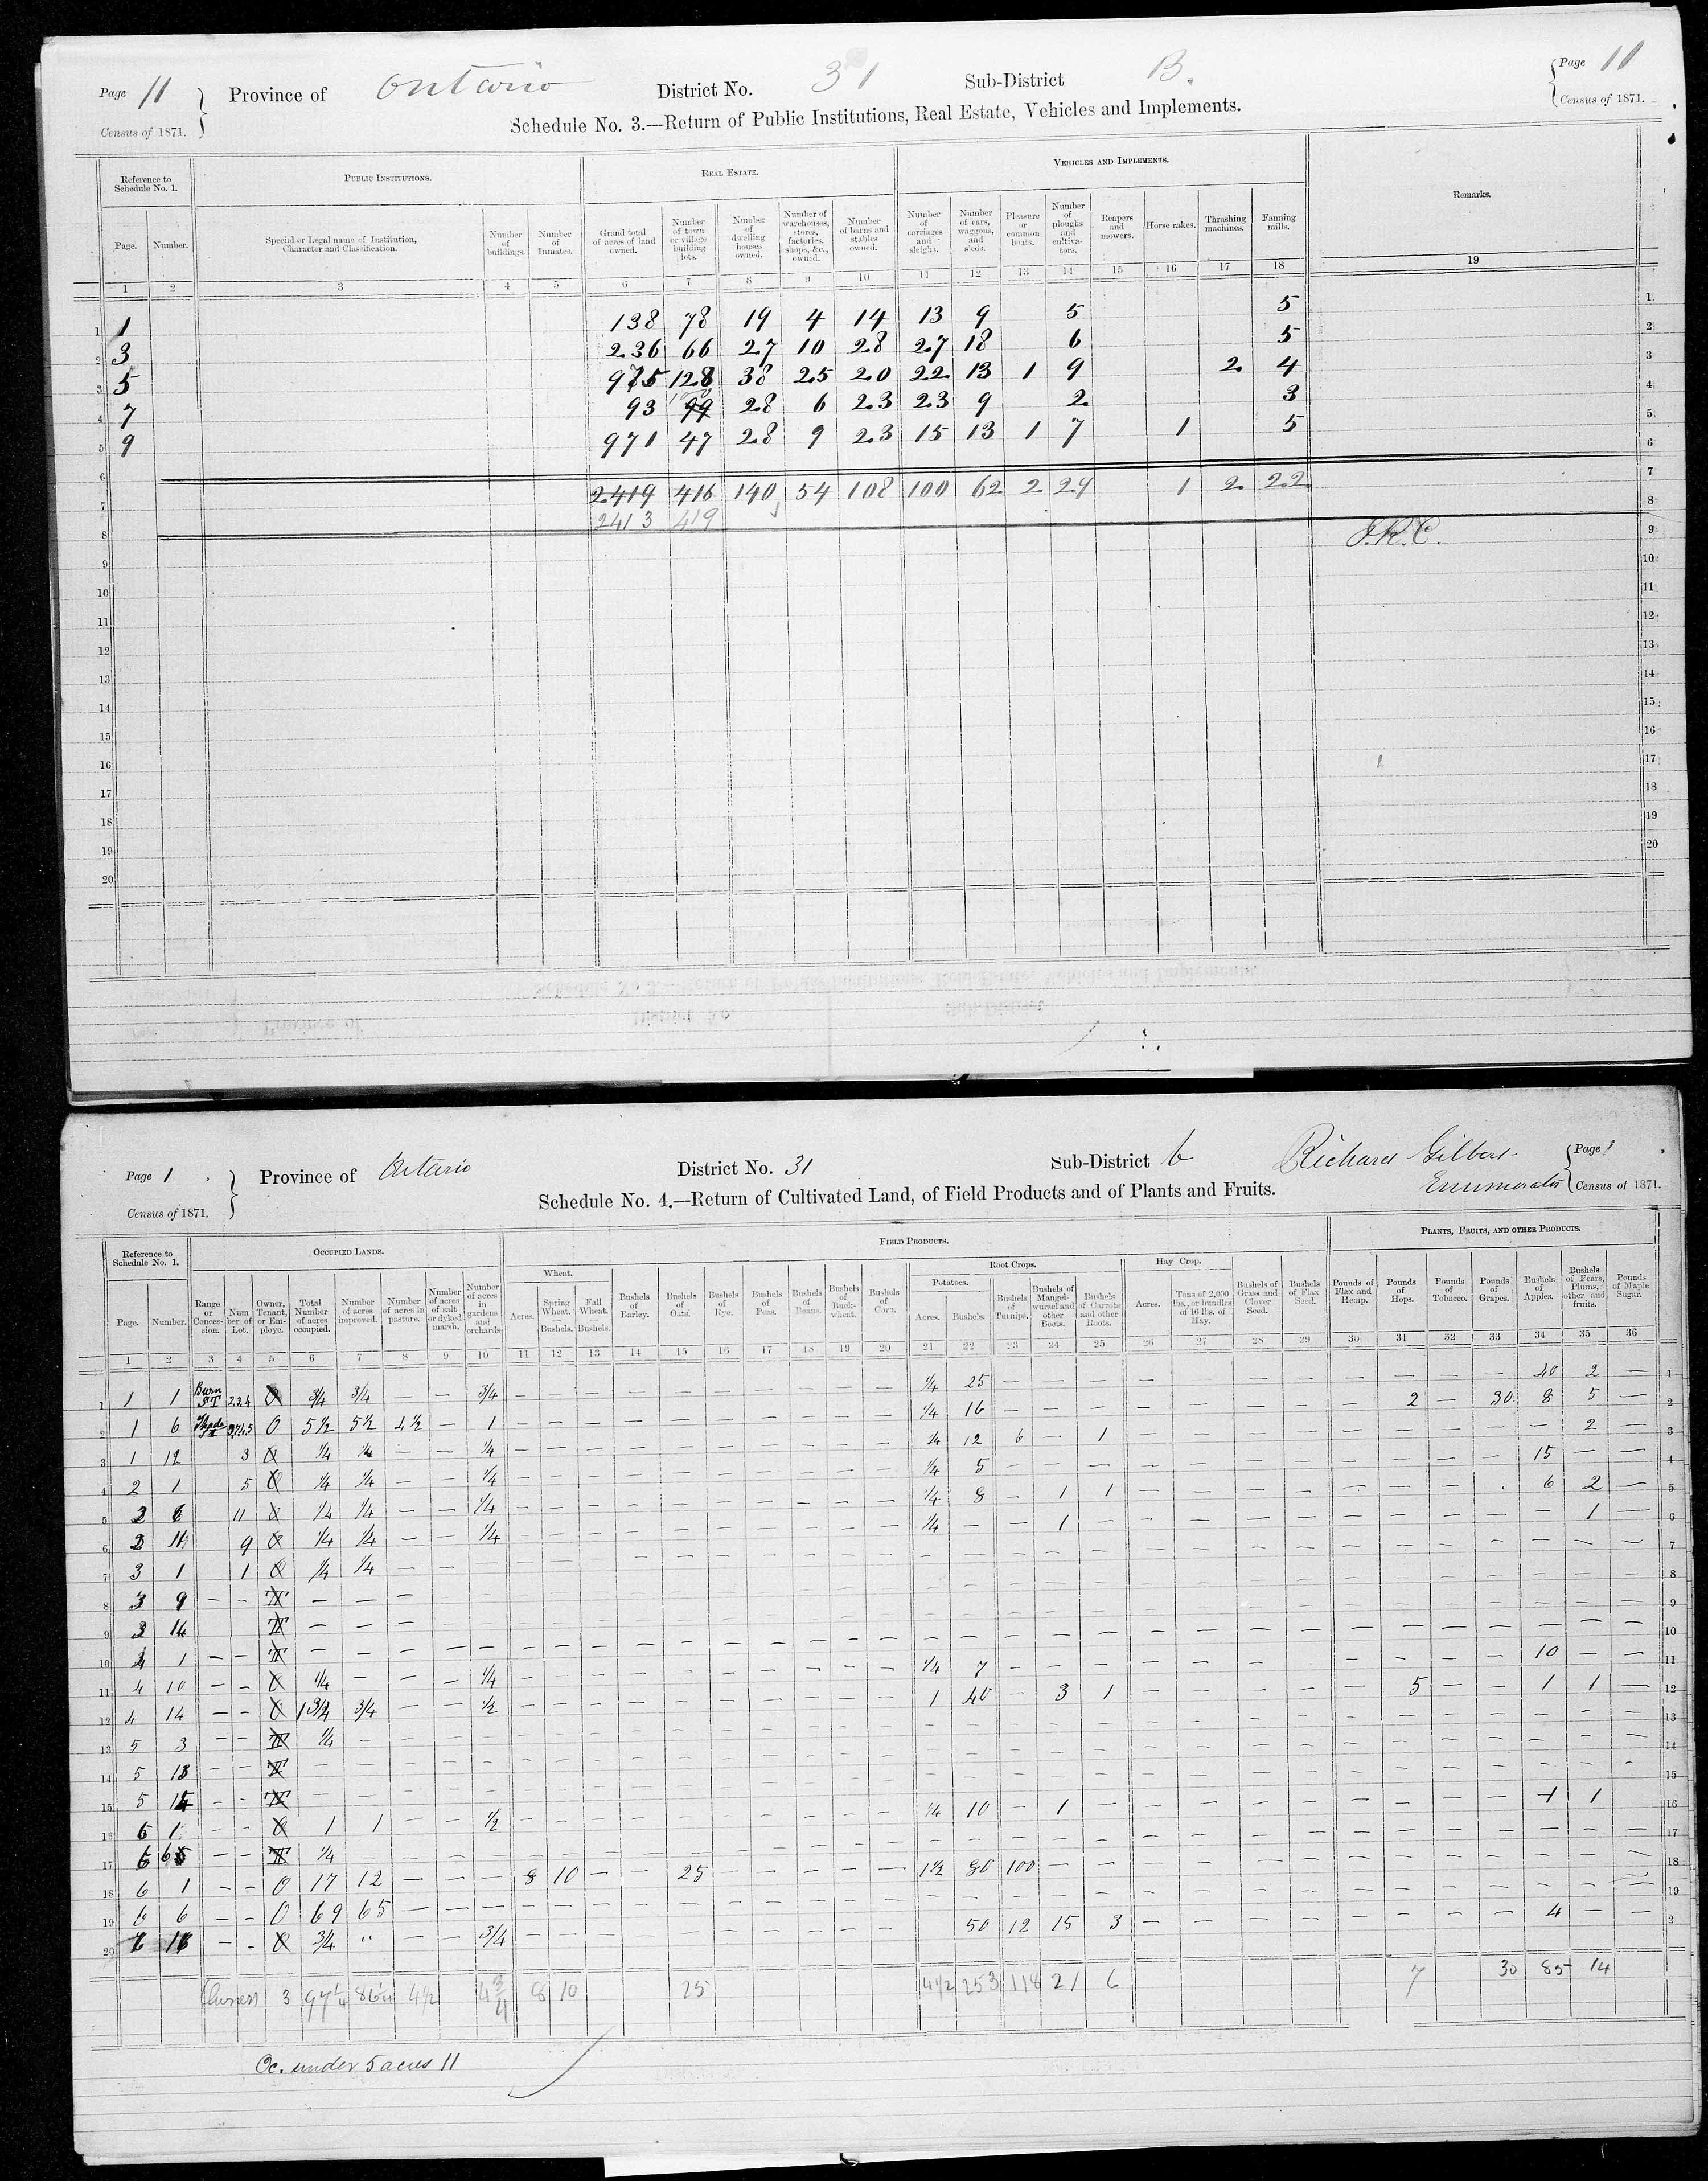 Title: Census of Canada, 1871 - Mikan Number: 142105 - Microform: c-9942